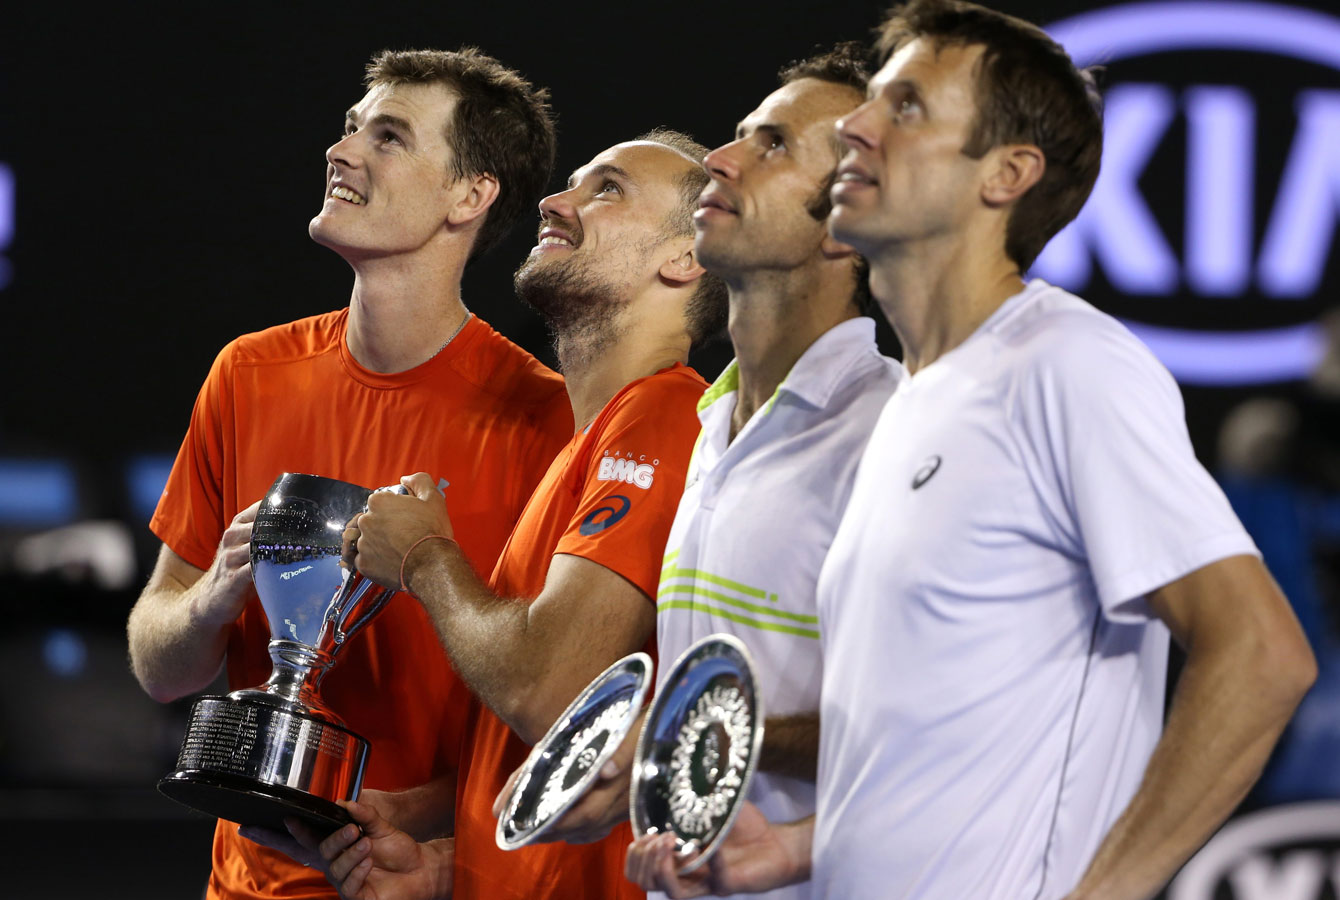 Daniel Nestor (right) holds the runner-up plate at the Australian Open after the men's doubles final on January 30, 2016.